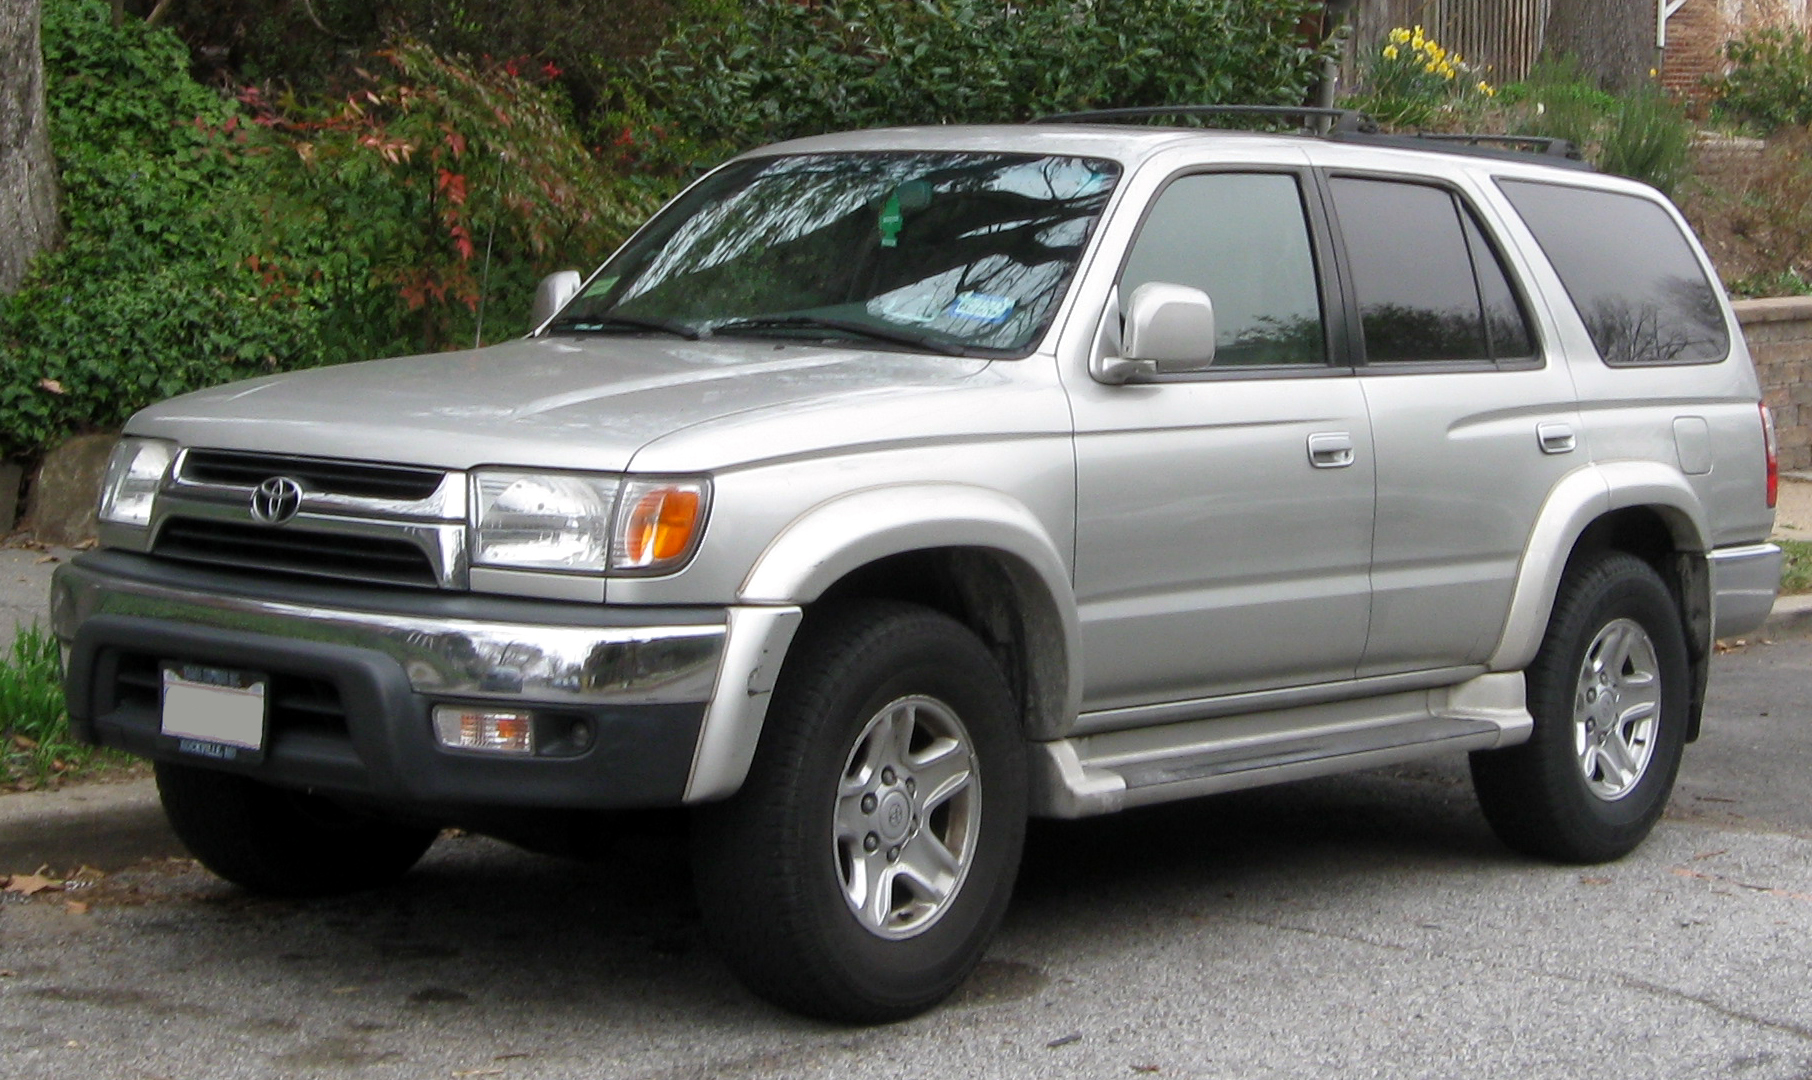 File:2001-2002 Toyota 4Runner -- 03-16-2012.JPG ...